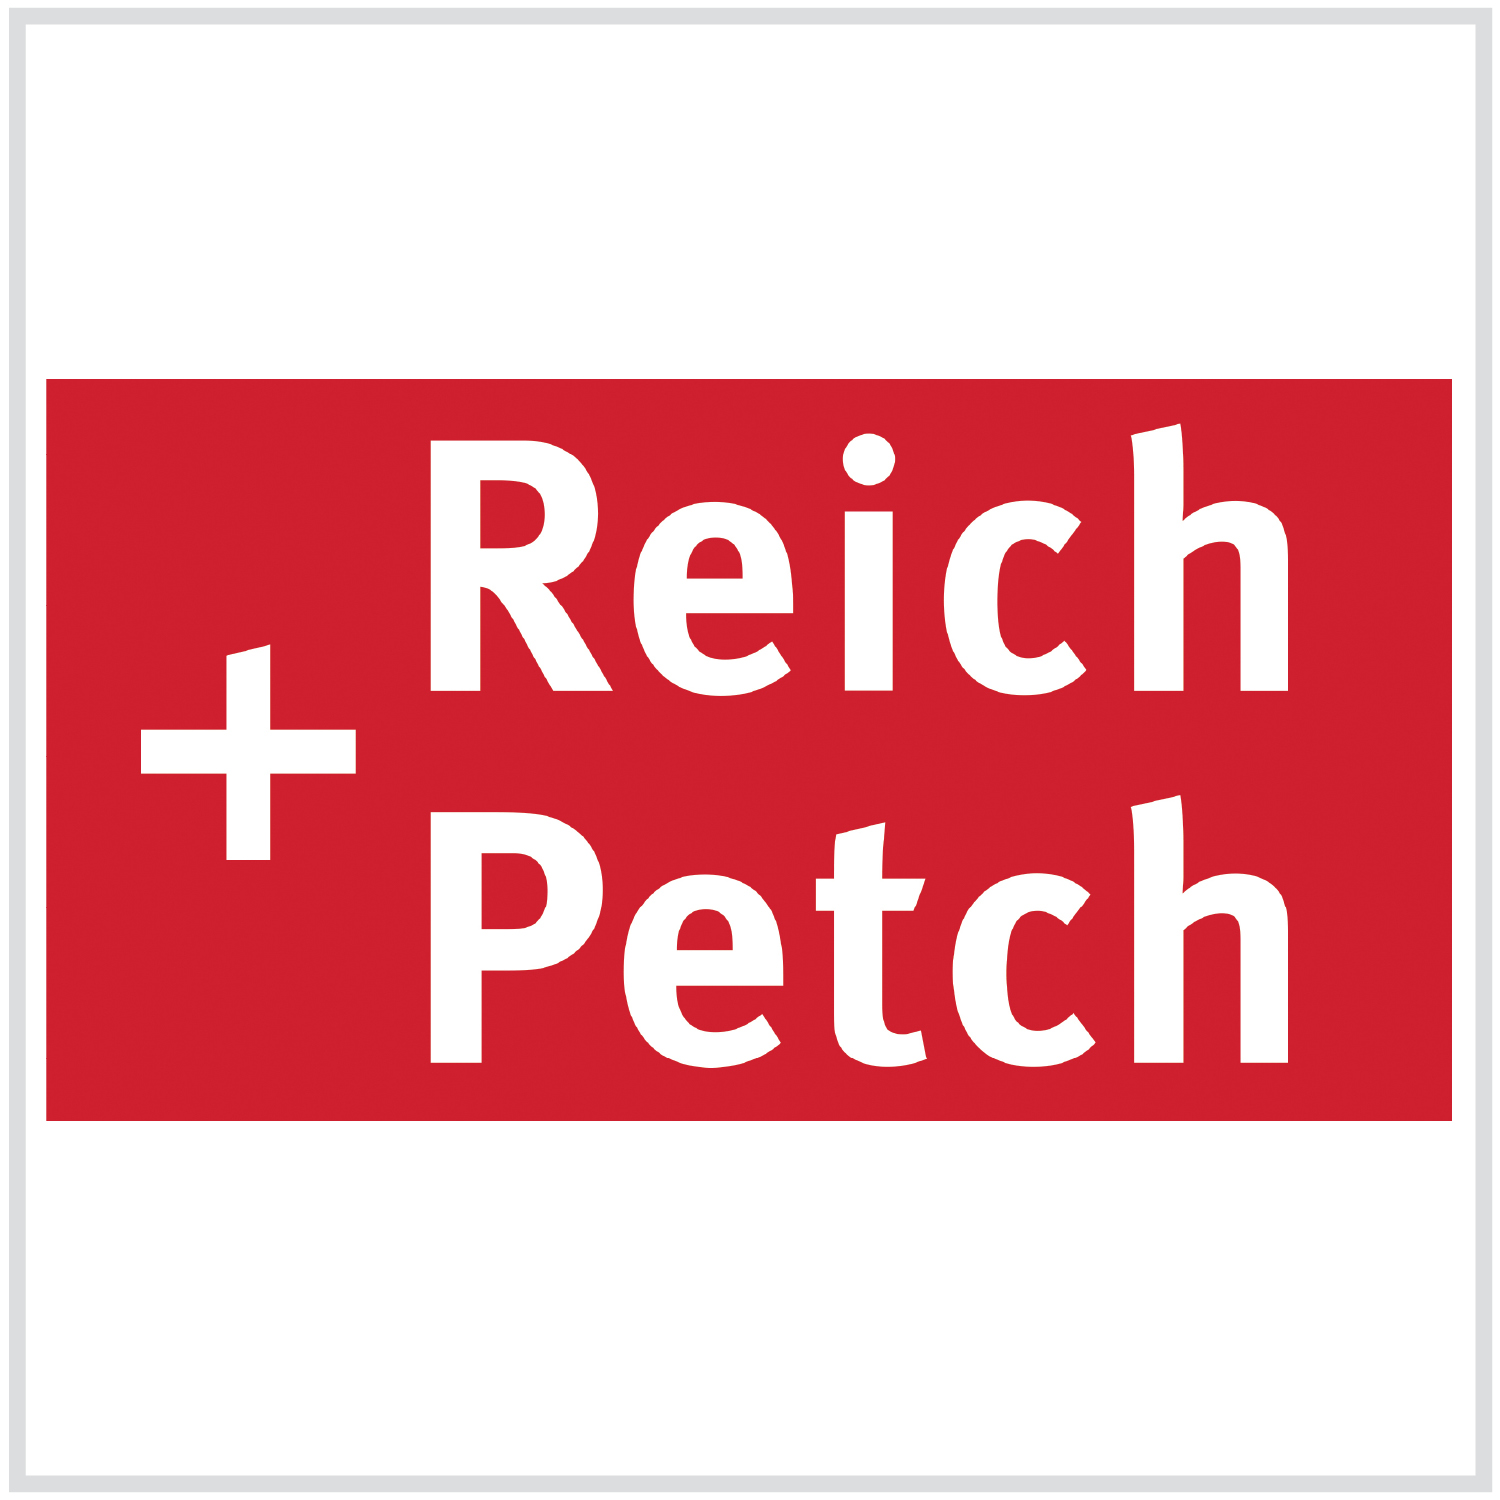 Reich + Petch Design International  Reich+Petch creates thought-provoking and engaging experiences. We design environments that examine and explain our world and enrich the human experience. Reich+Petch is a multi-disciplinary museum design firm. Our services include architecture, exhibit design, master planning, graphic design, interior design, signage + wayfinding, project management, design-build, and multimedia direction and procurement. We are inspired by opportunities that allow us to create imaginative, interactive spaces that are meaningful and entertaining. We are driven by the need to explore, innovate, and shape environments that excite the senses and provoke an emotional connection for both visitors and clients. We are based in Toronto, Ontario and Washington, DC, and work worldwide with museums, institutions, cultural organizations, and destination attractions. We have built a reputation as design leaders and innovators, with meticulous process and diligent documentation, and the ability to deliver remarkable and robust projects.  www.reich-petch.com